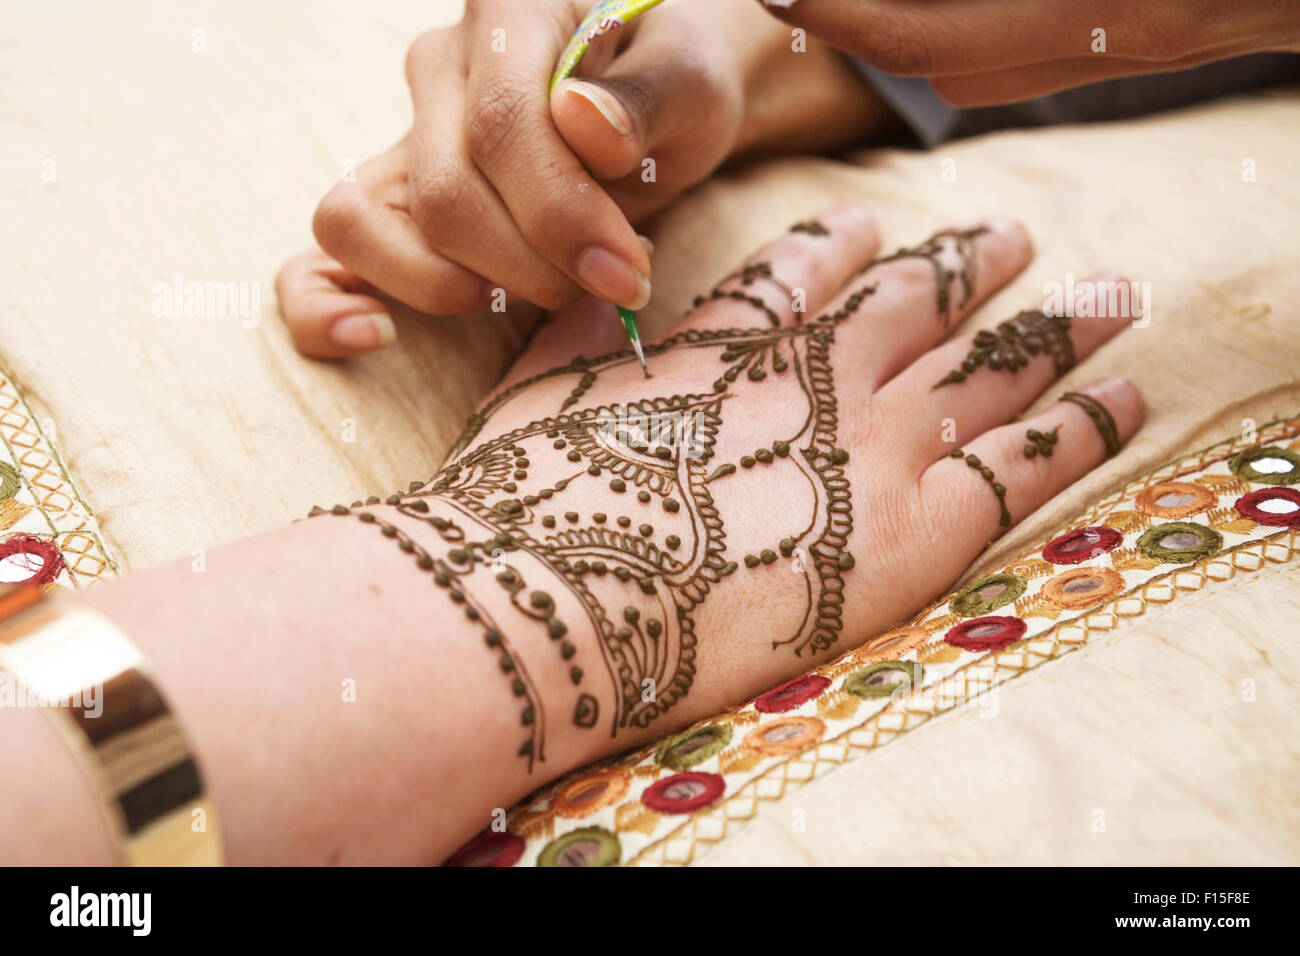 Henna patterns, hand being decorated / tattooed with hena. Henna painting. Henna hand decorations. - Stock Image